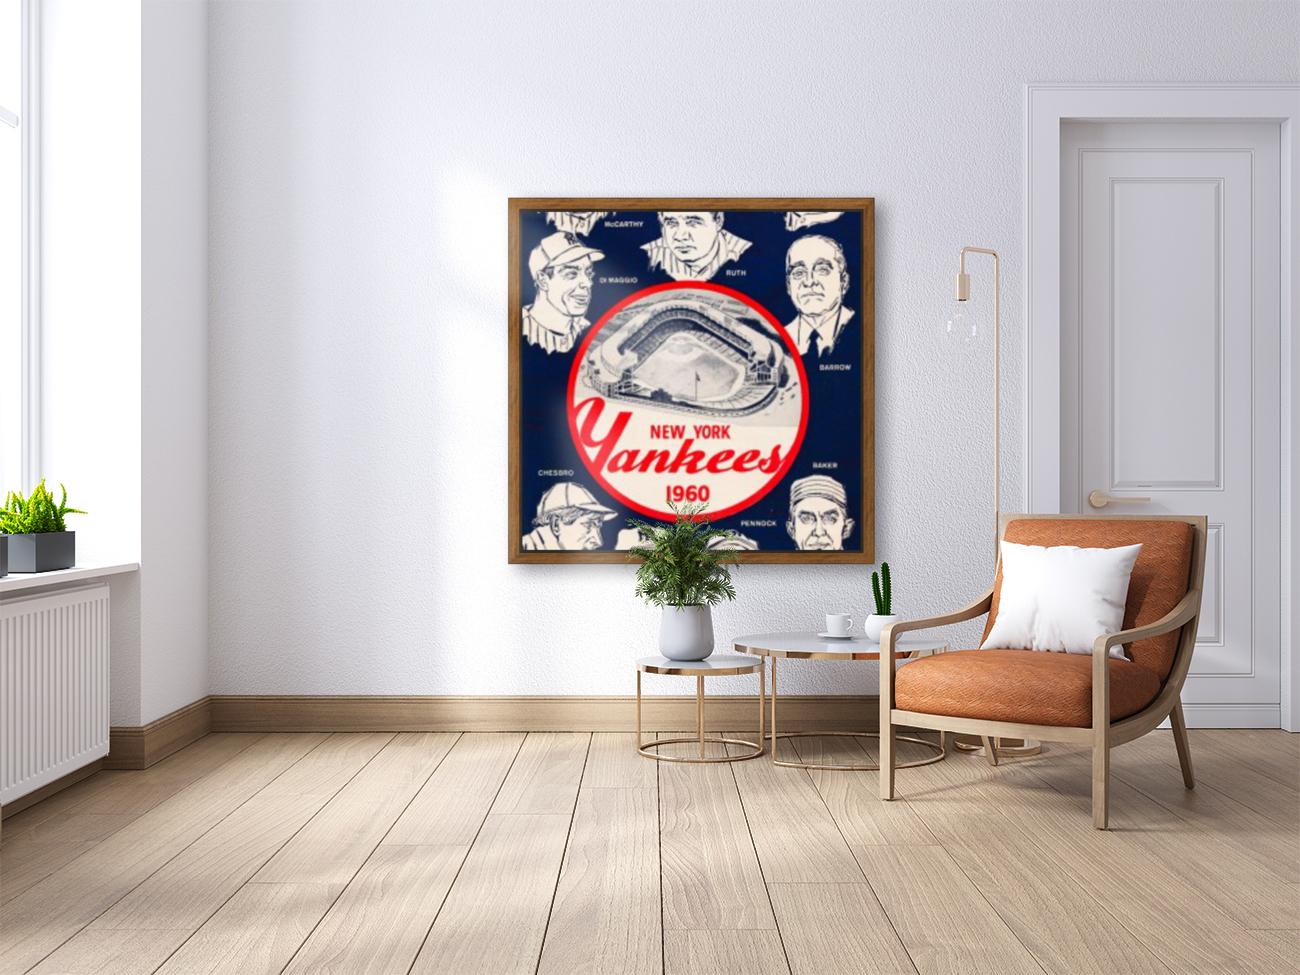 1960 New York Yankees In The Hall Of Fame Art  Art